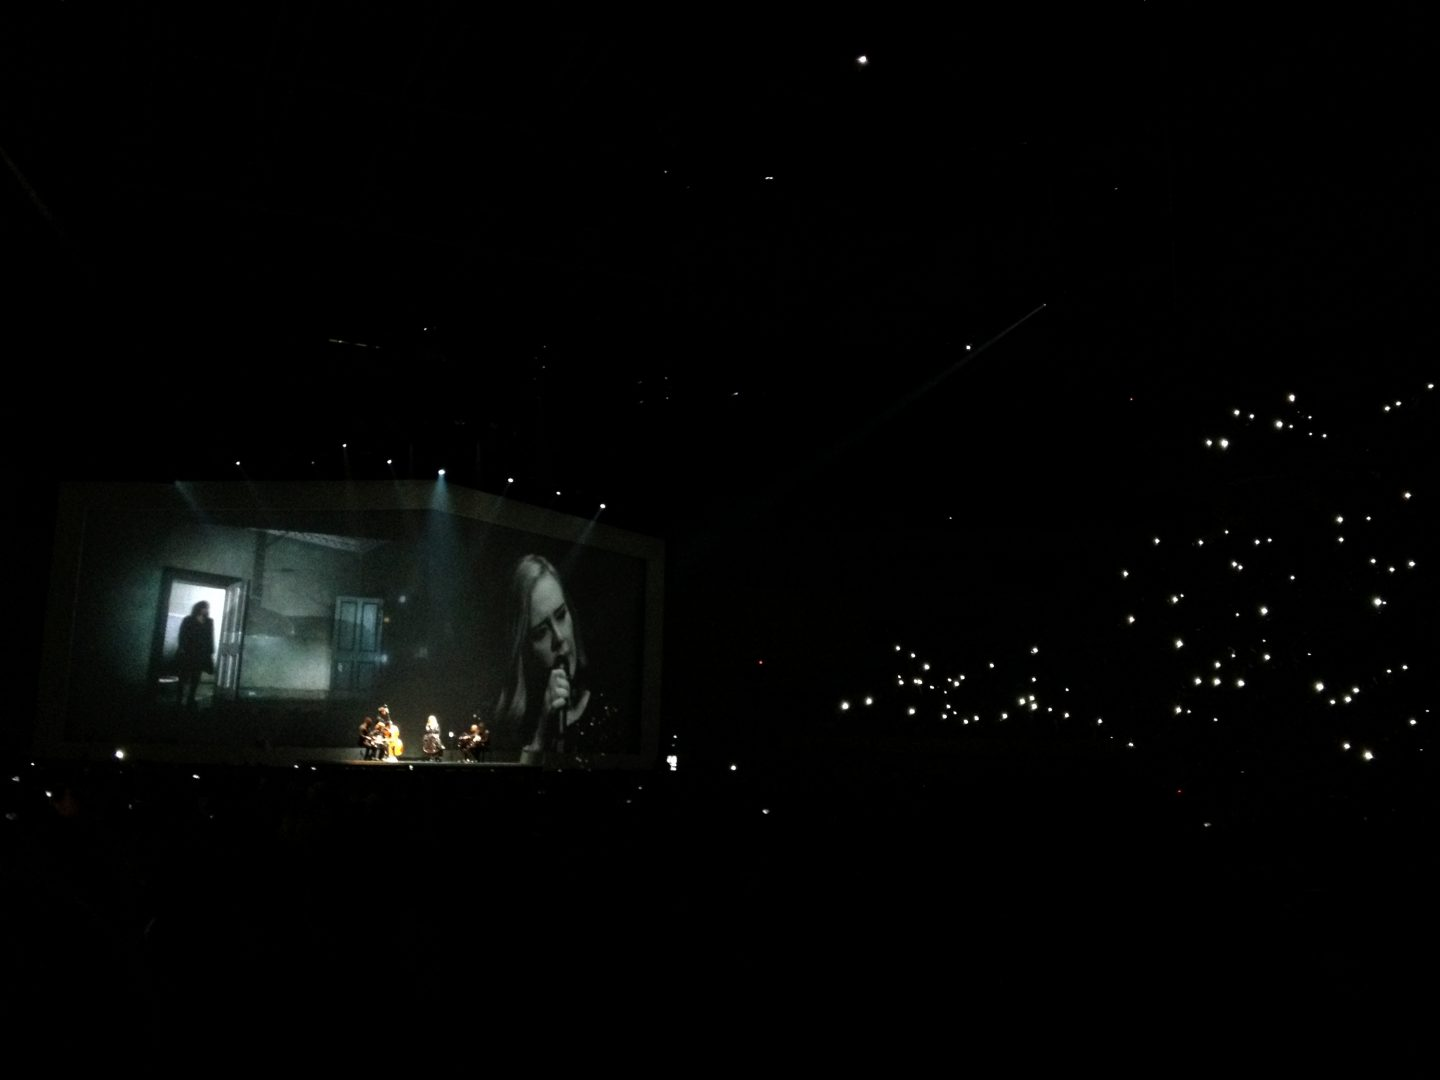 My Evening with Adele